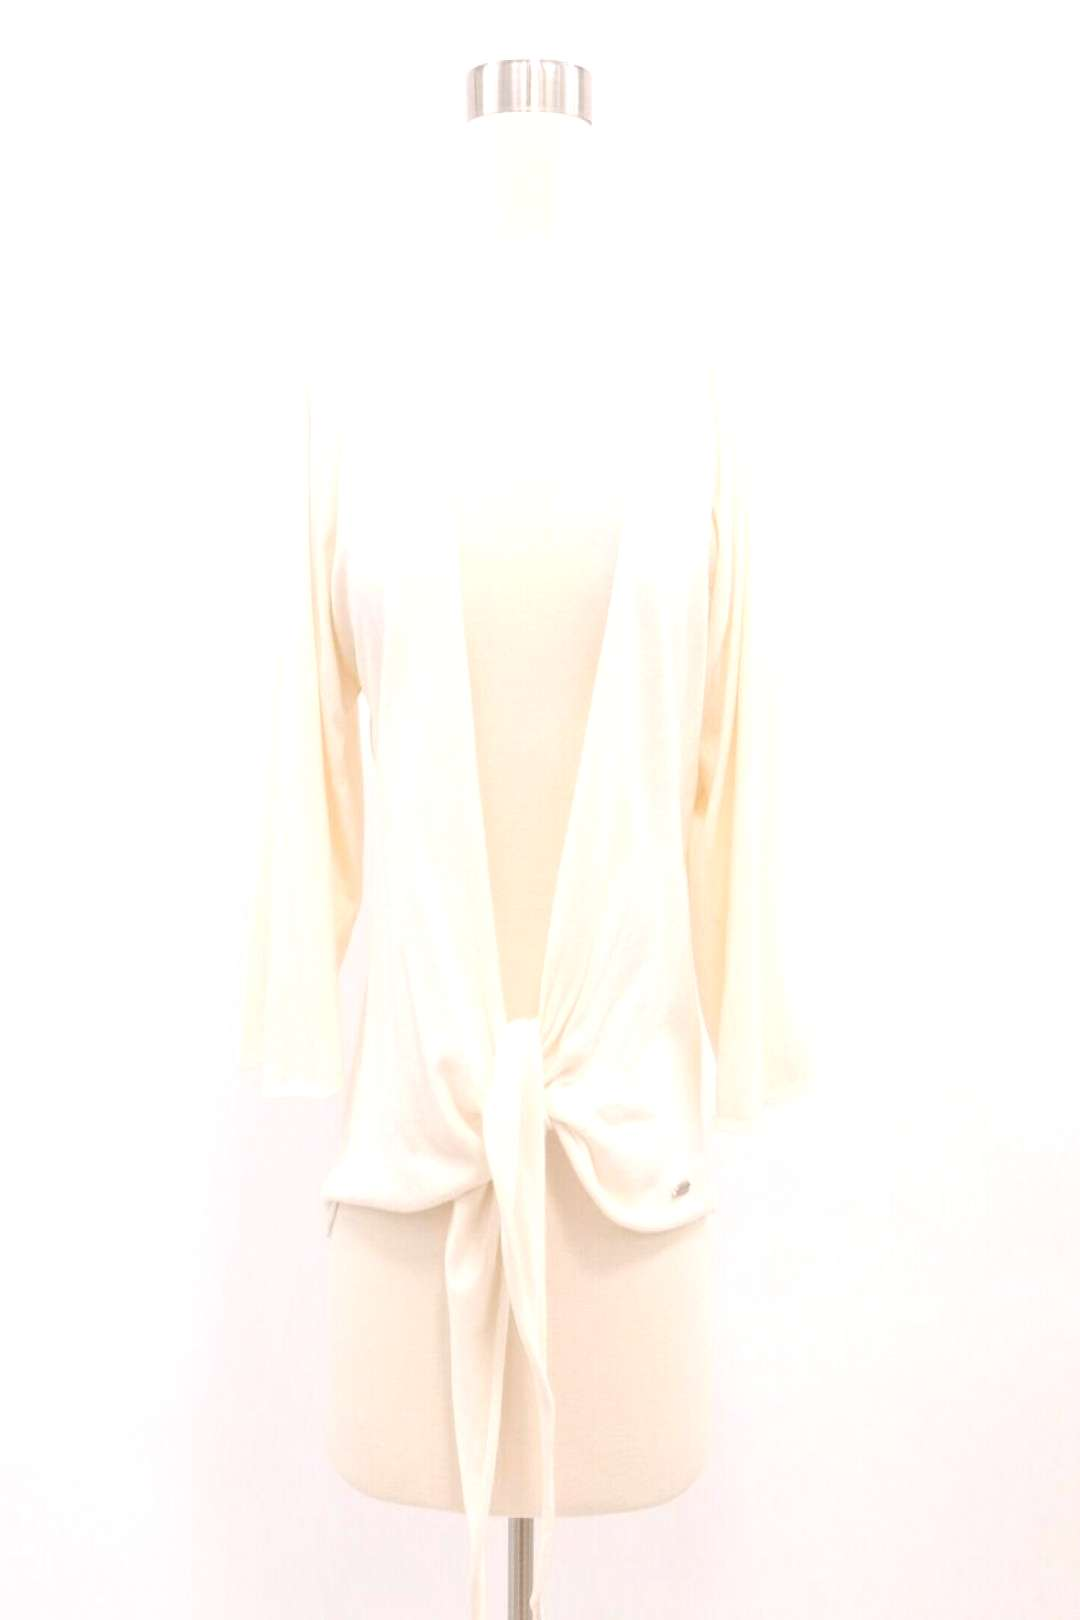 Marc O'Polo Cardigan Sweater Womens M Front Tie Knot Ivory White Cotton Silk